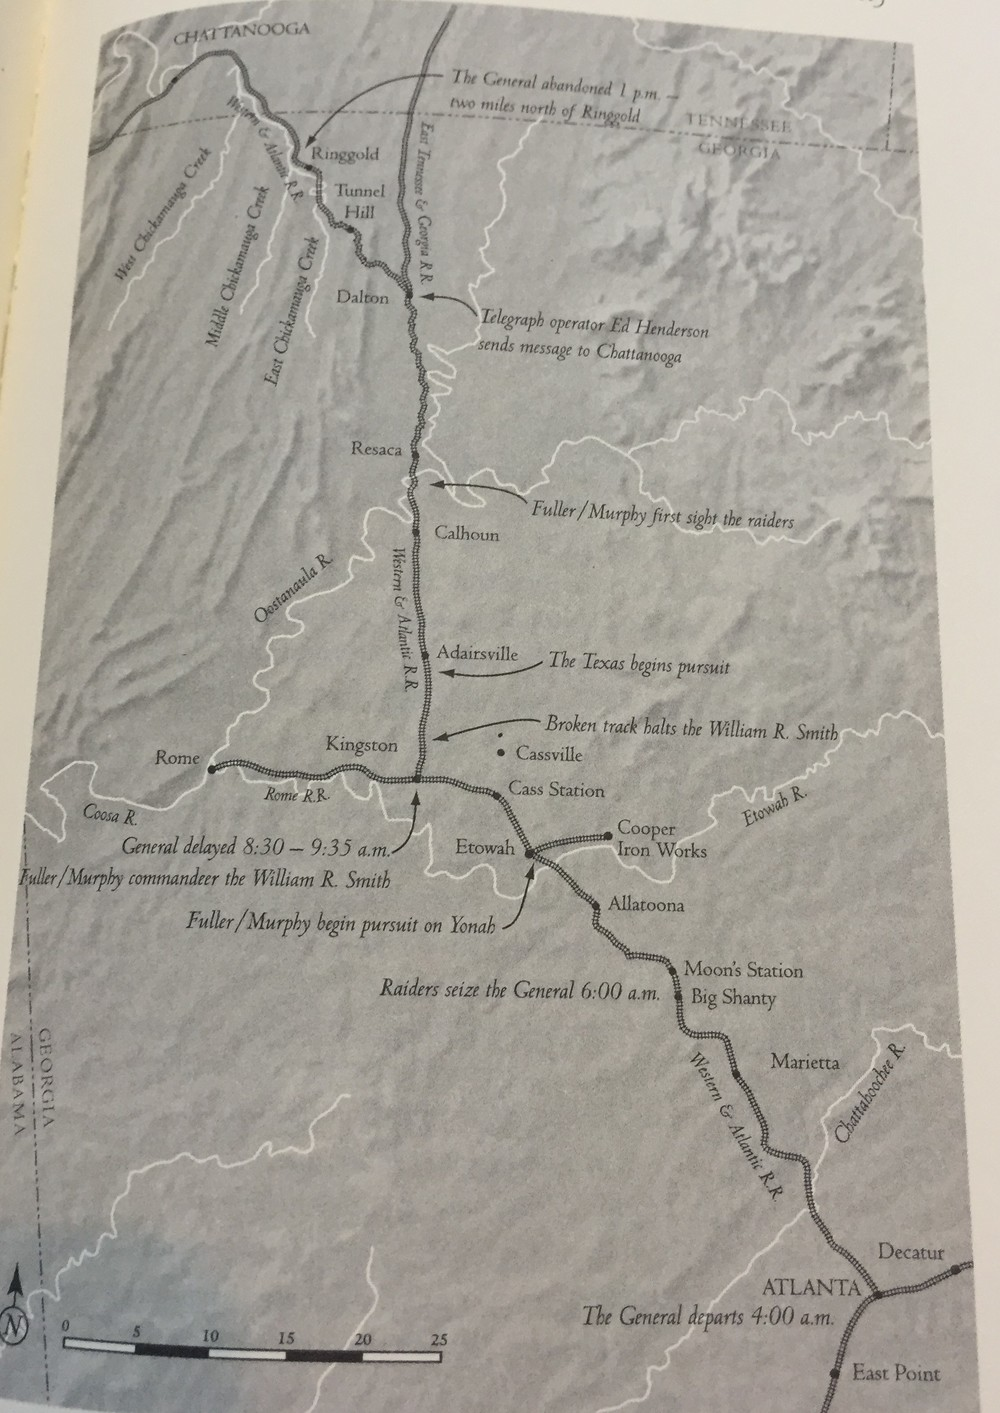 Route of the Andrews' Raid. From Russell S. Bond's Stealing the General, page 115.